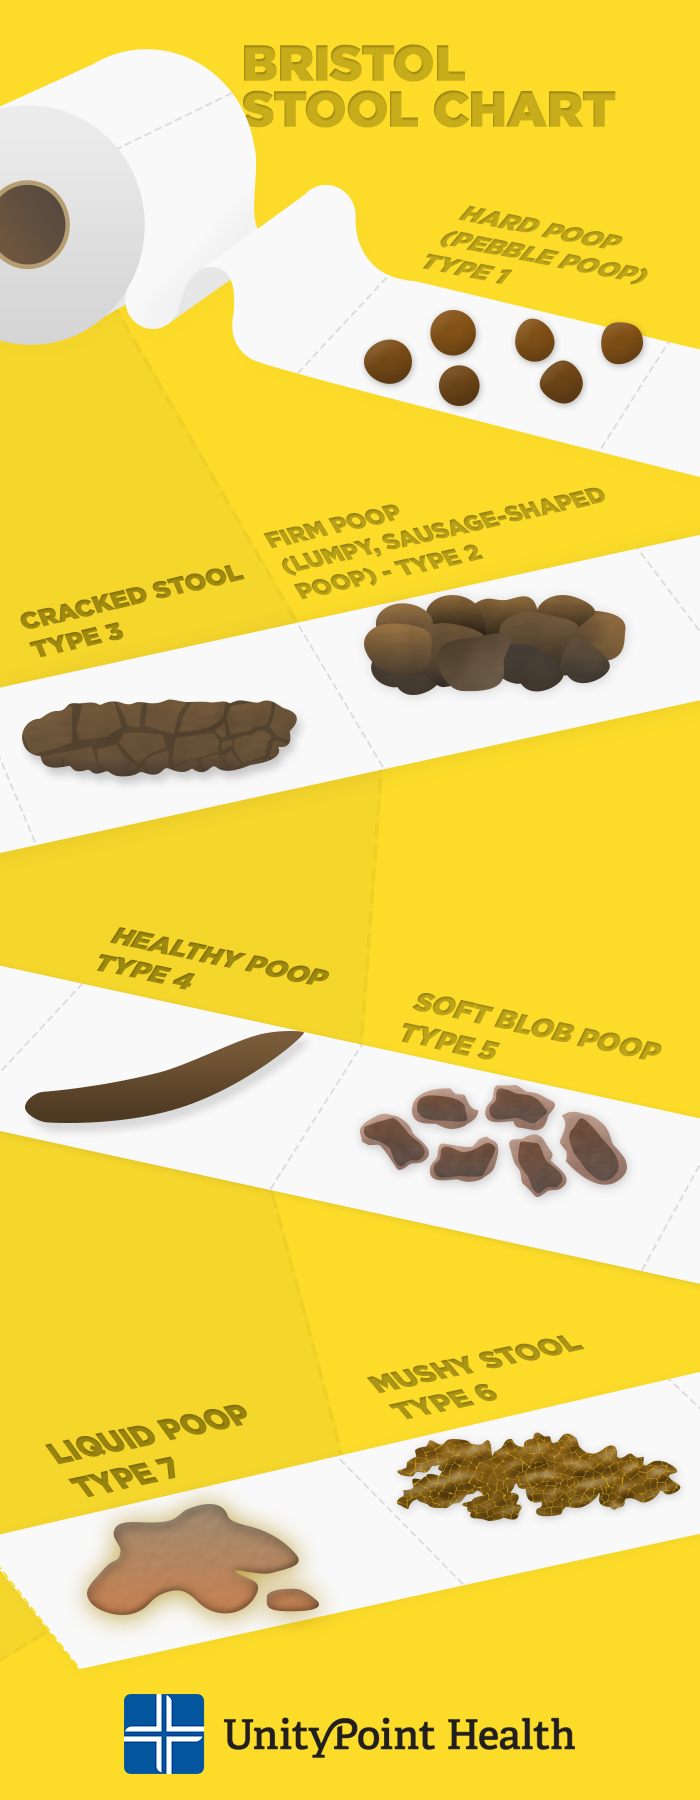 What the color and consistency of your poop says about you what poop says about your health nvjuhfo Images